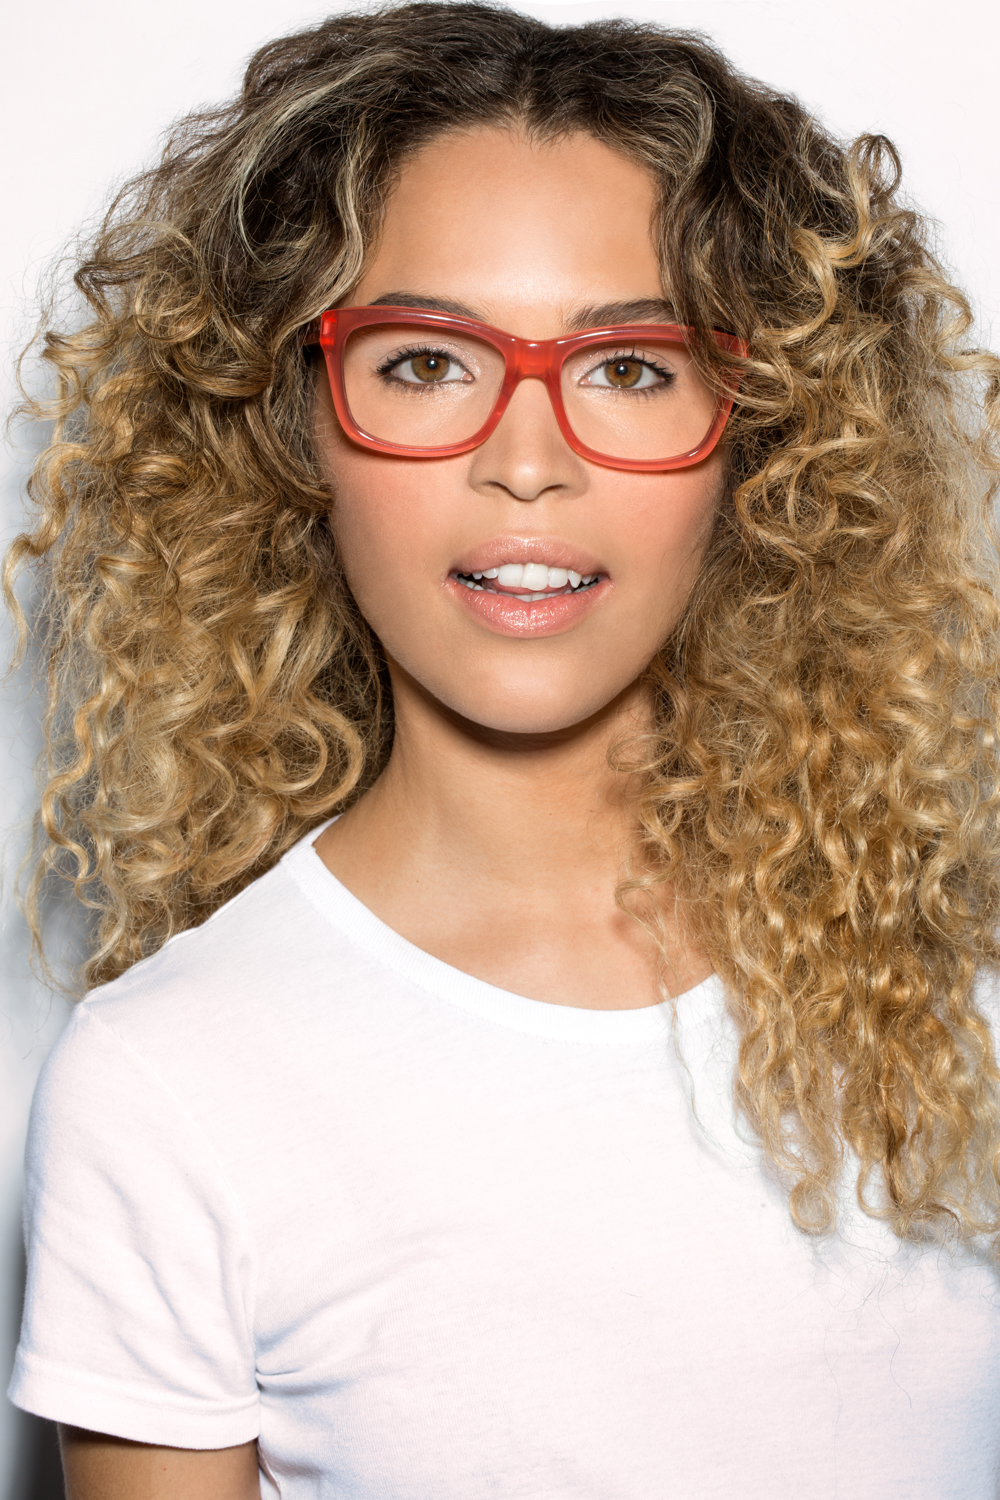 d60c3a1506 Bobbi Brown Eyewear